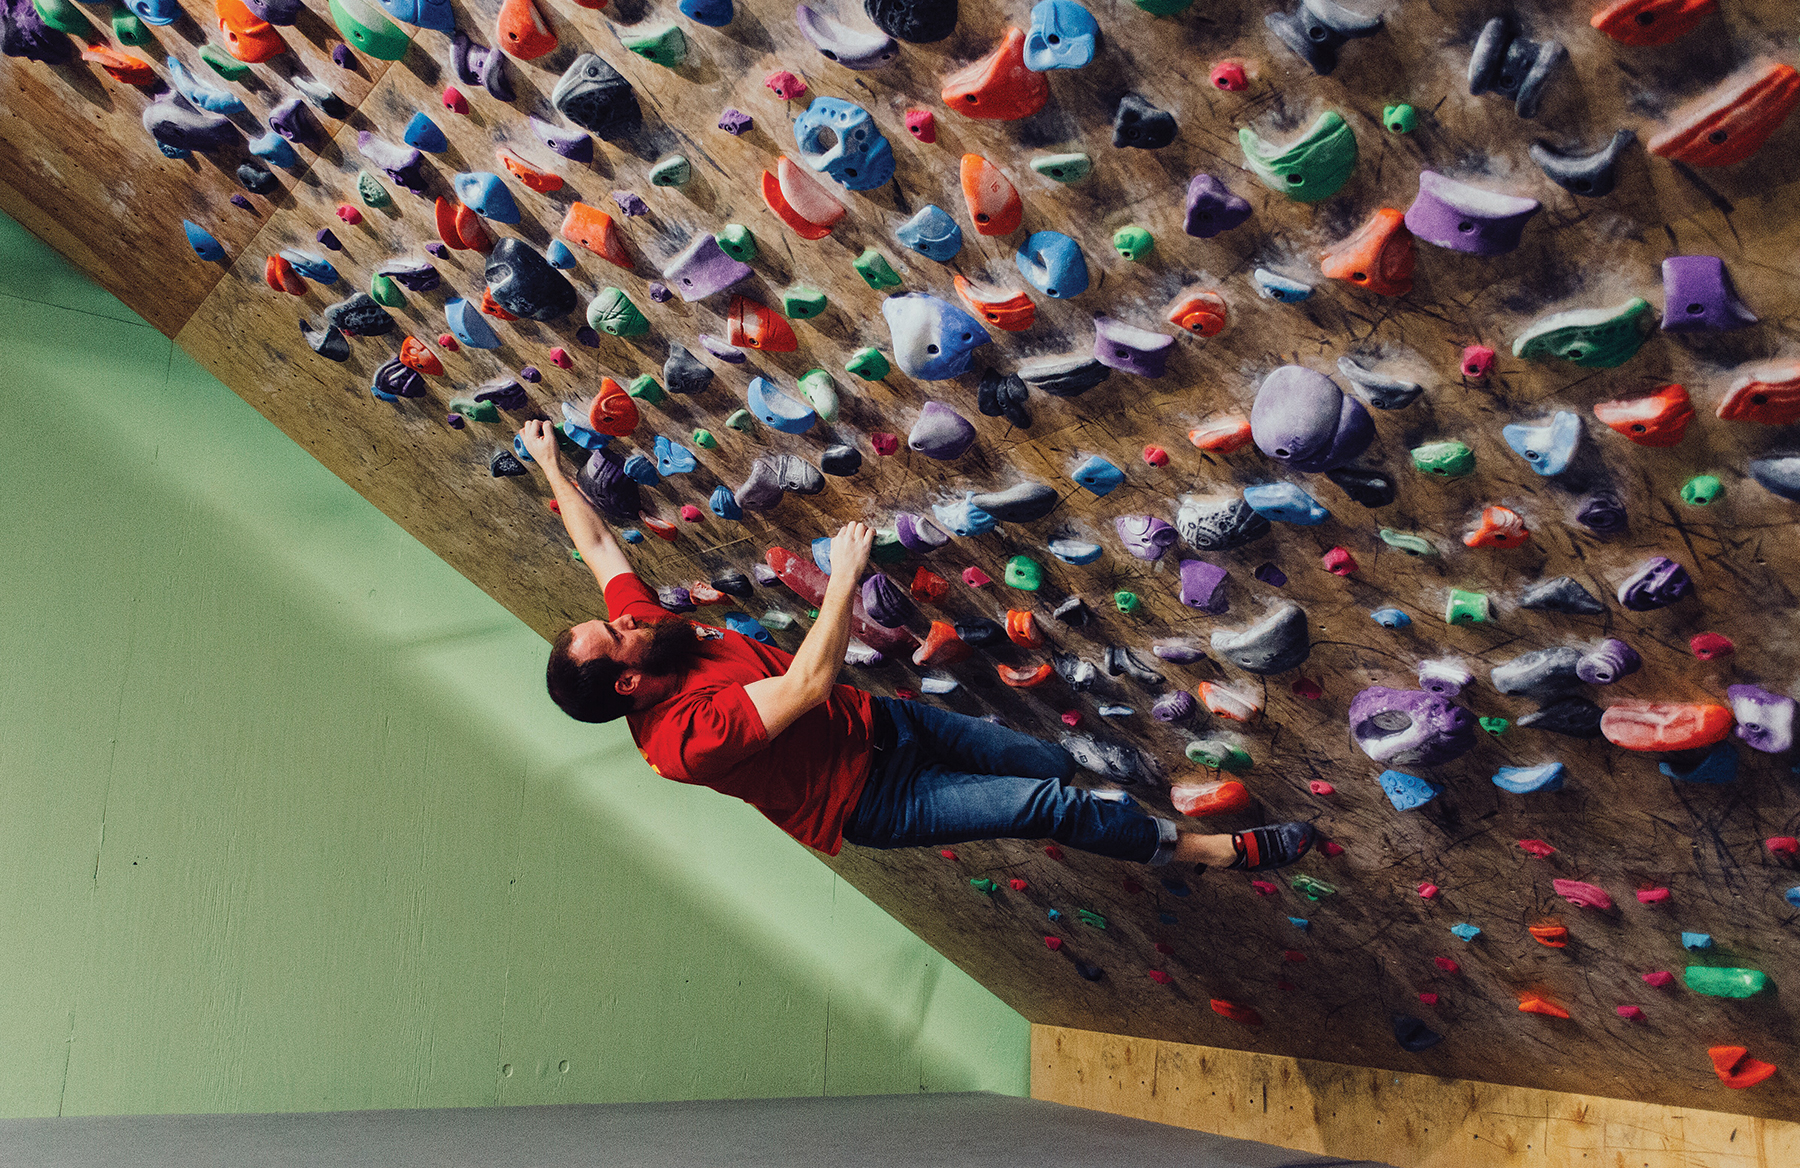 Rob Anderson on the 60 degree training wall at Climb So iLL.